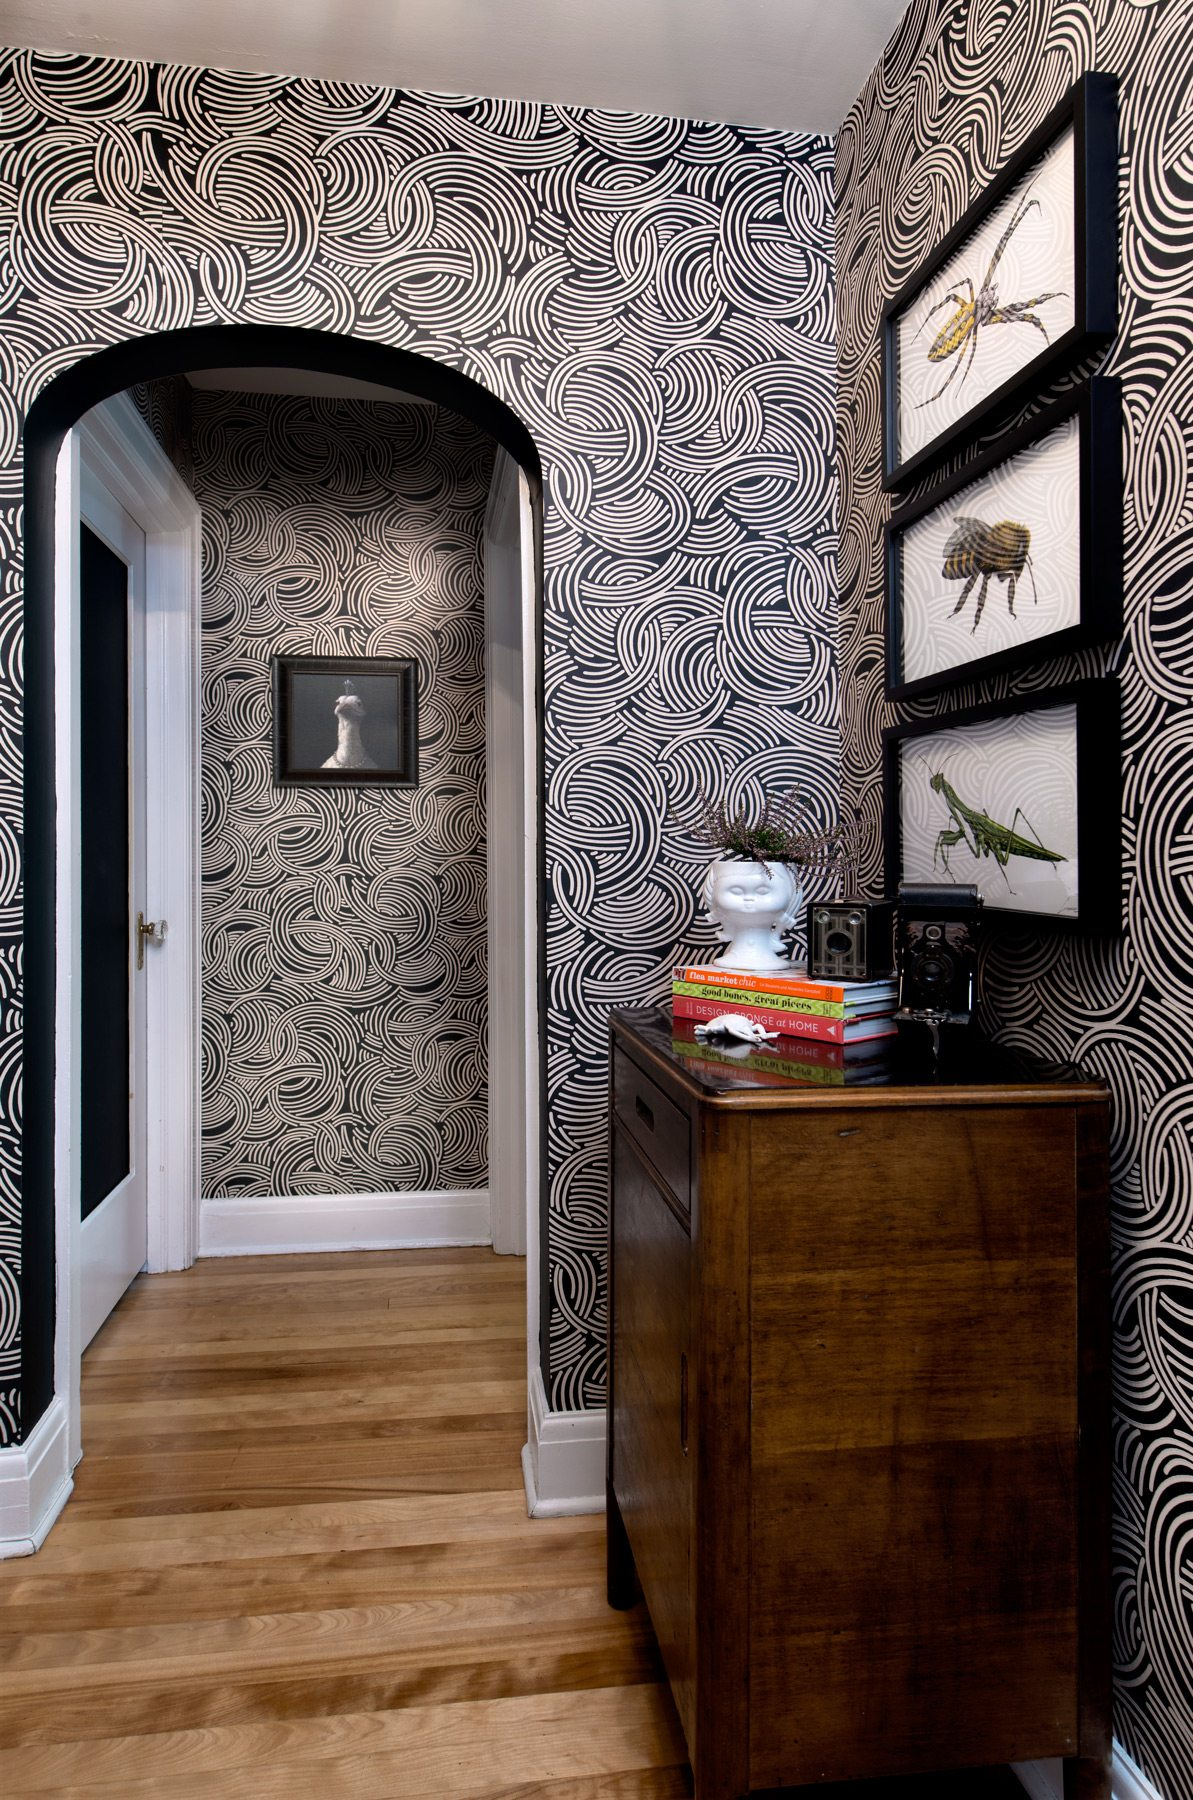 The Farrow & Ball wallpaper that starts in the downstairs hall continues up to the second-floor hallway. The three framed creepy-crawlies, by local illustrator Graham Spaull, seem to be content on their busy black-and-white background. Photography: Marc Fowler / Metropolis Studio